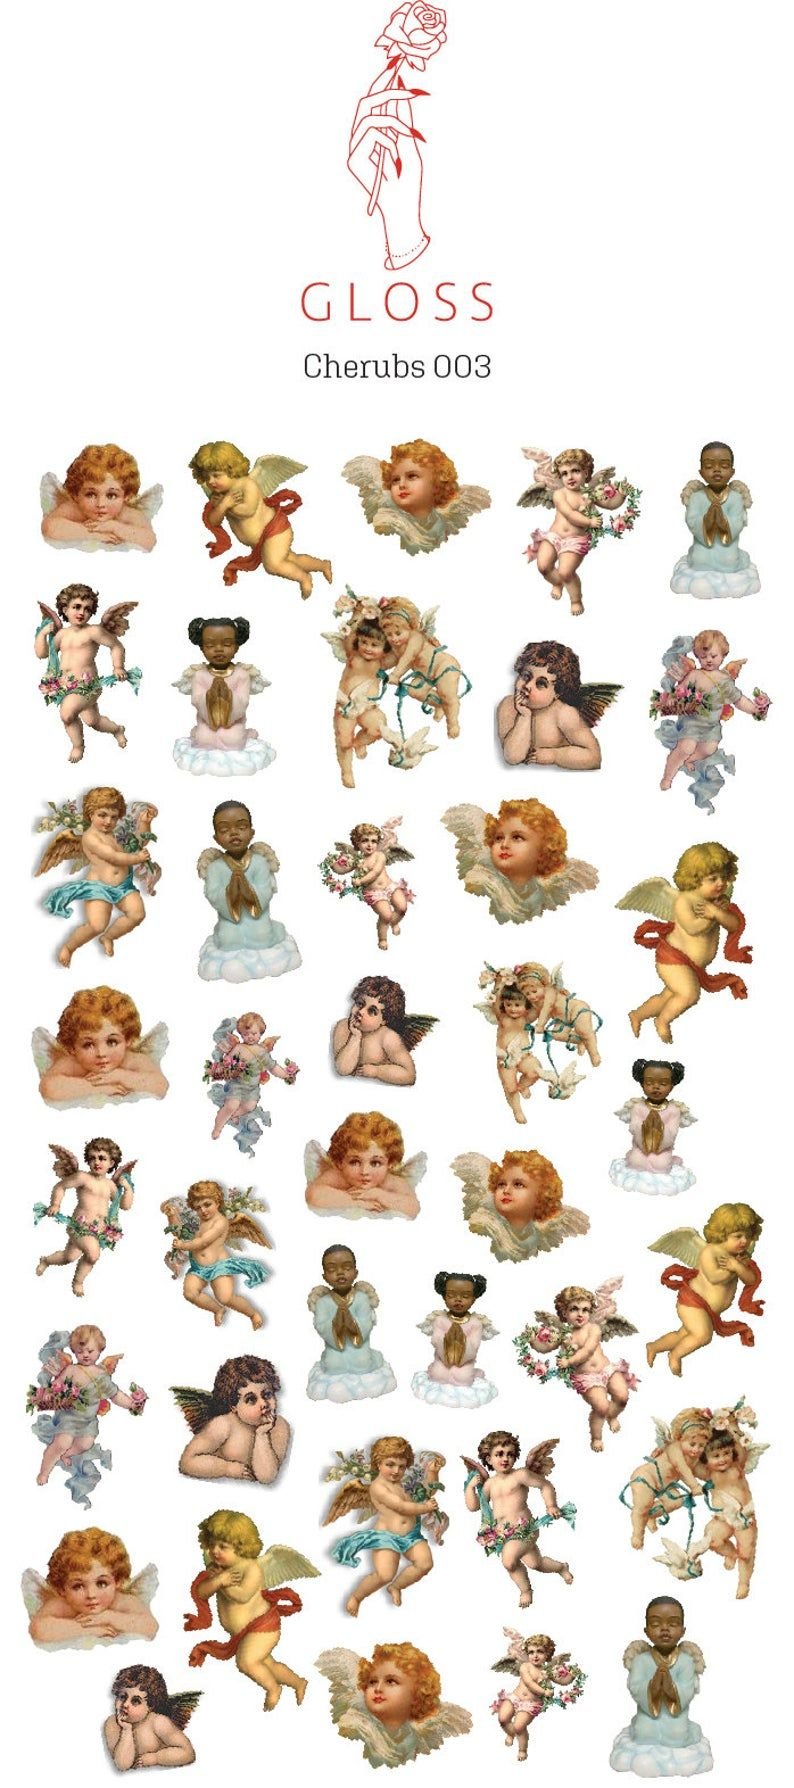 Cherubs 003 |Angel Nail Decals, Cherub Nail Art, Waterslide Decals, Gift for Her|